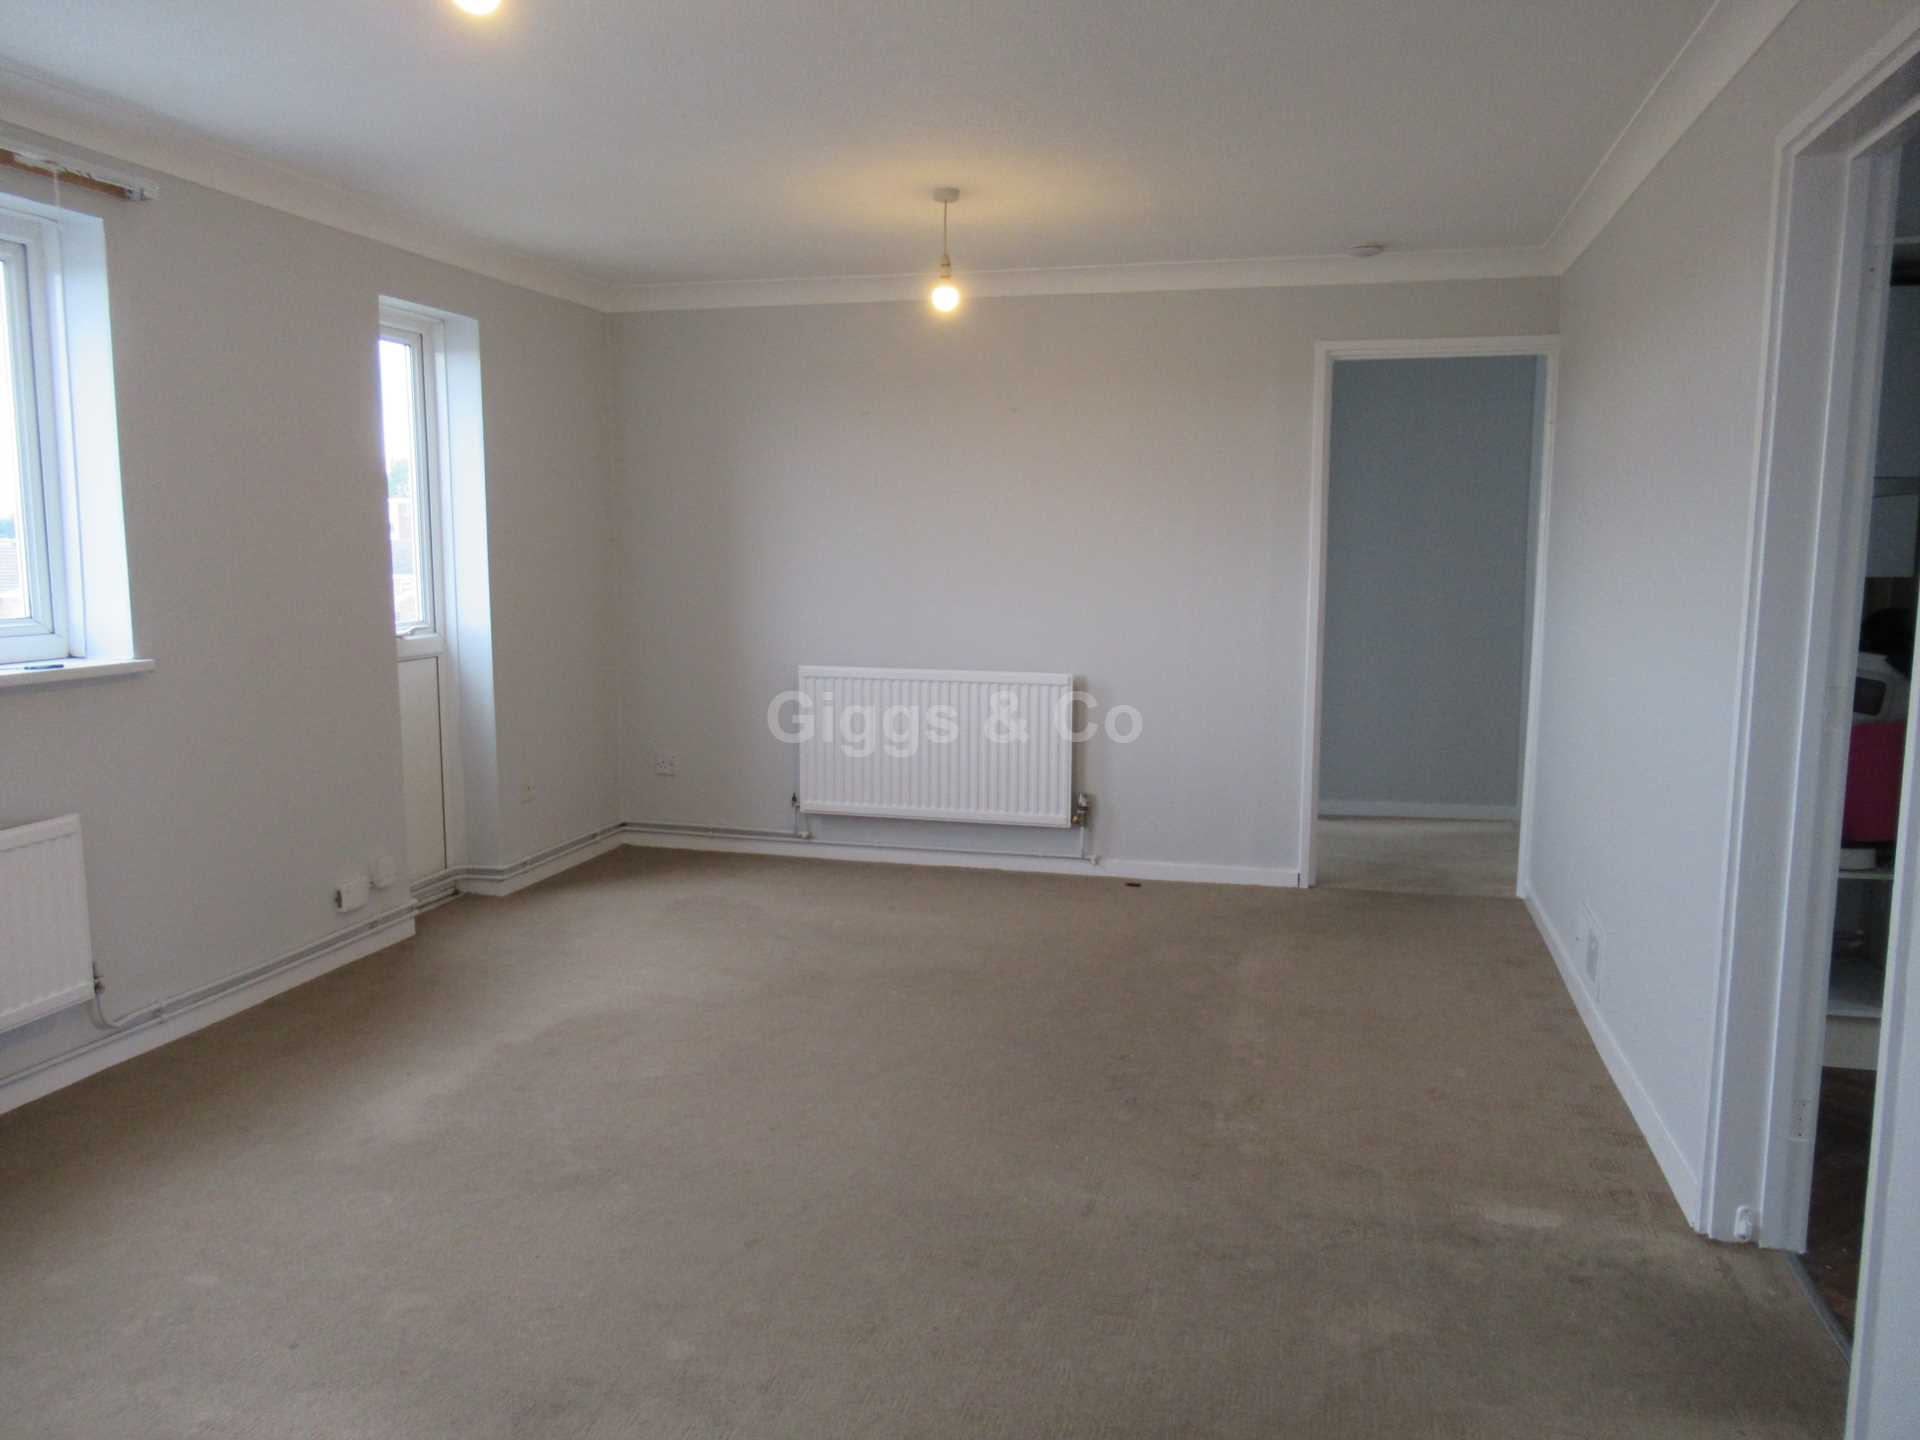 2 bed apartment to rent in Mallard Lane, Eynesbury, St Neots  - Property Image 6